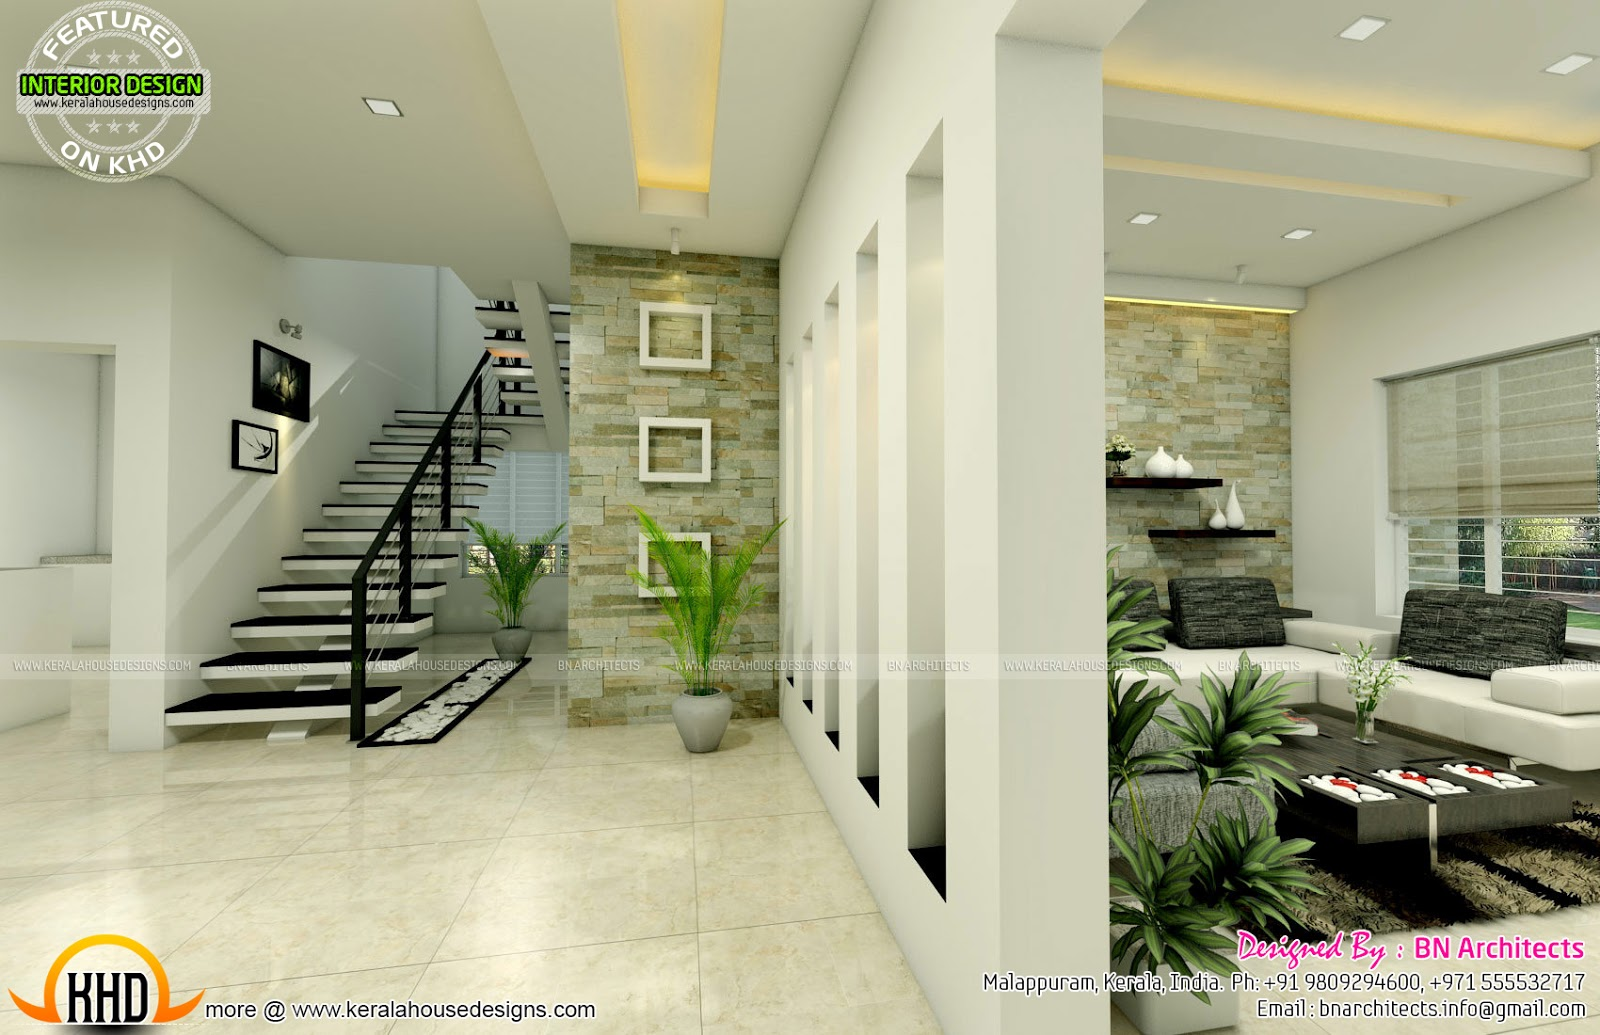 All In One : House Elevation, Floor Plan And Interiors